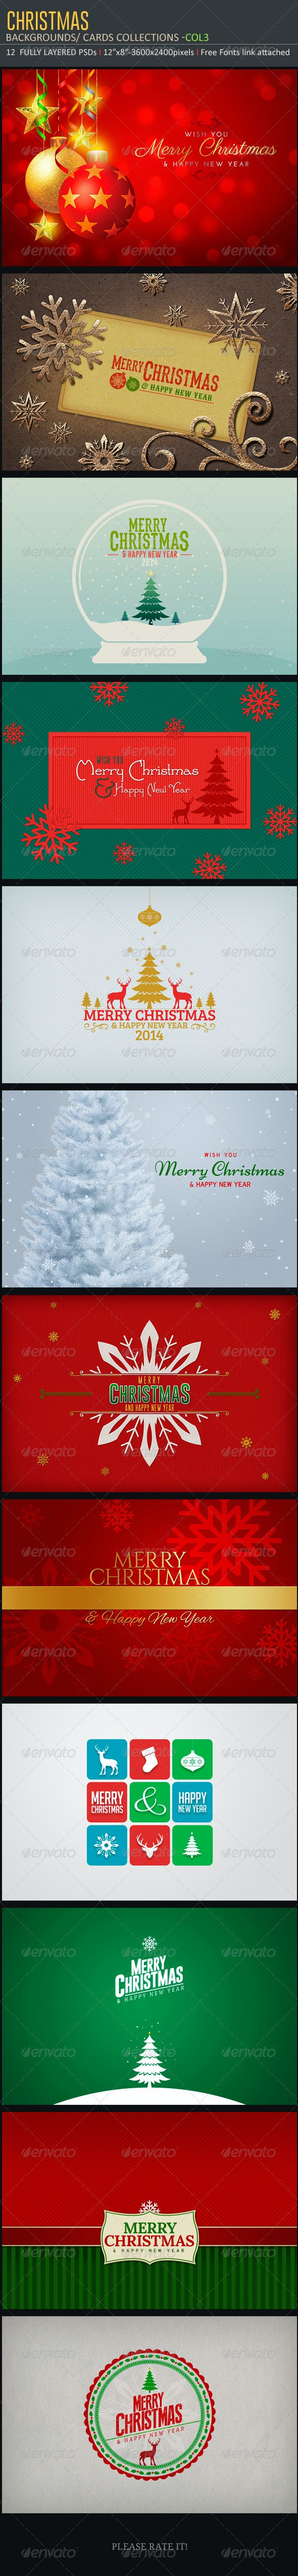 Christmas Backgrounds-Cards -Col3 - Backgrounds Graphics